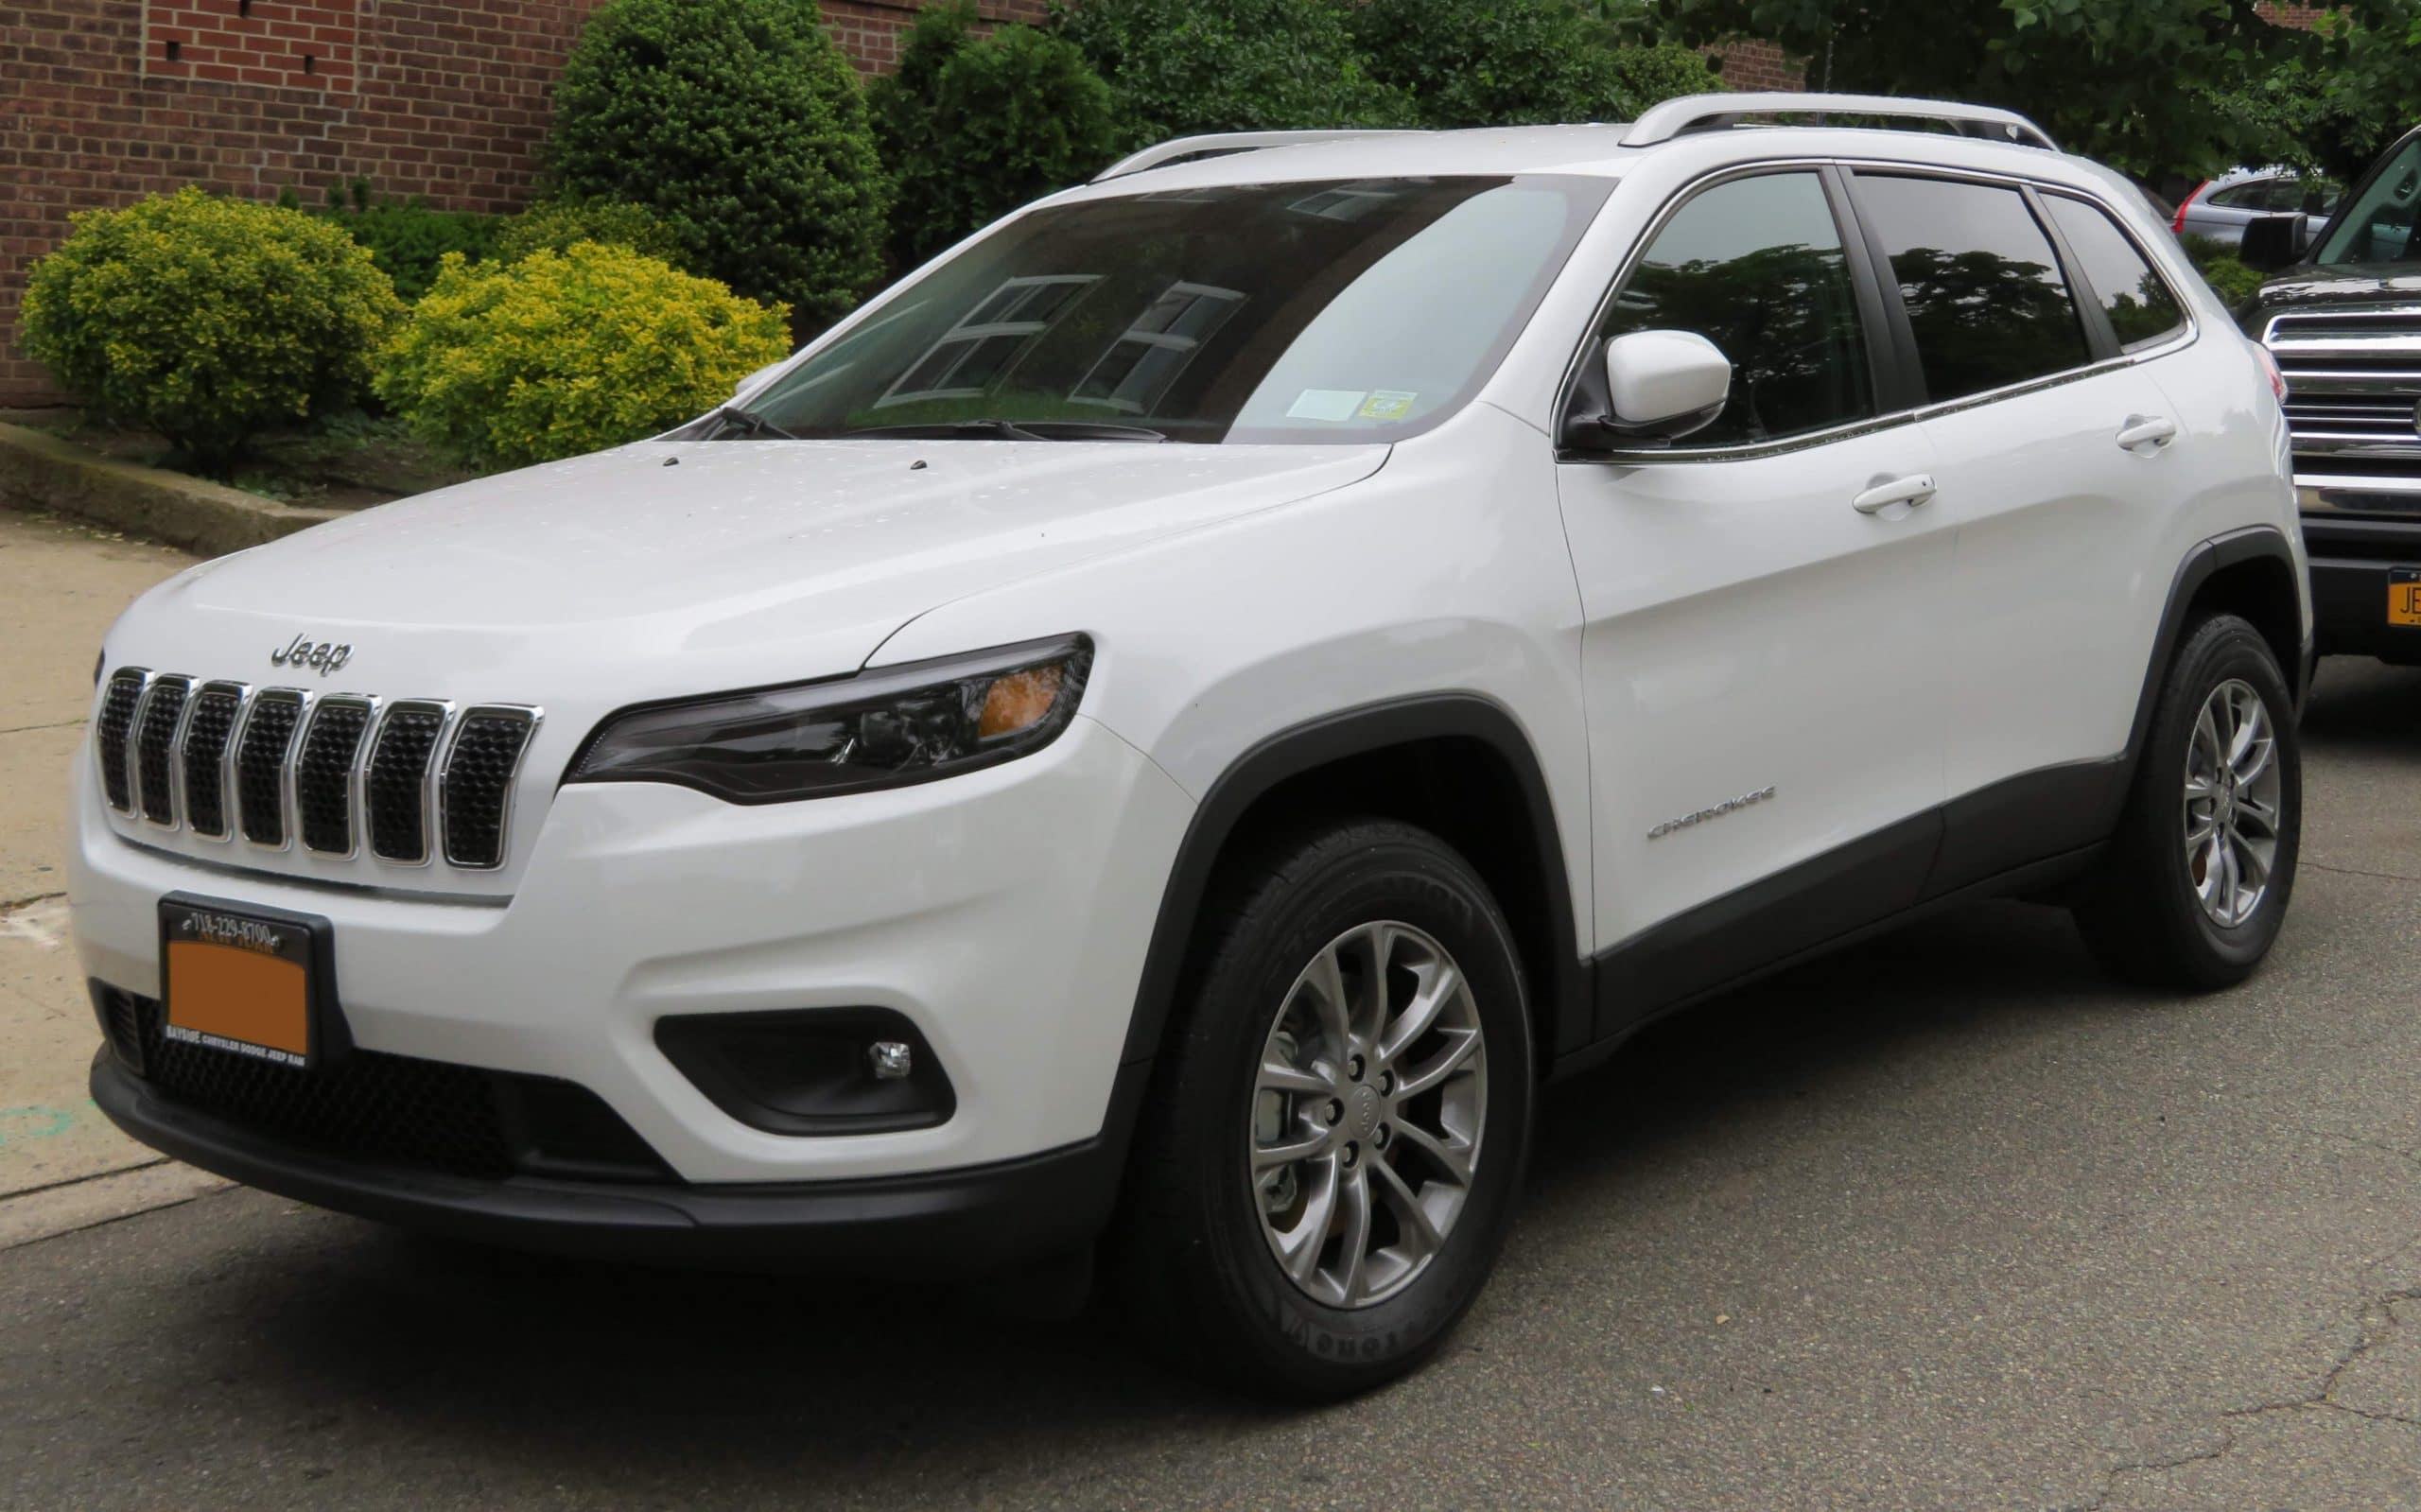 Jeep SUVs May Be Dropping Cherokee Name Due To Tribal Insensitivity